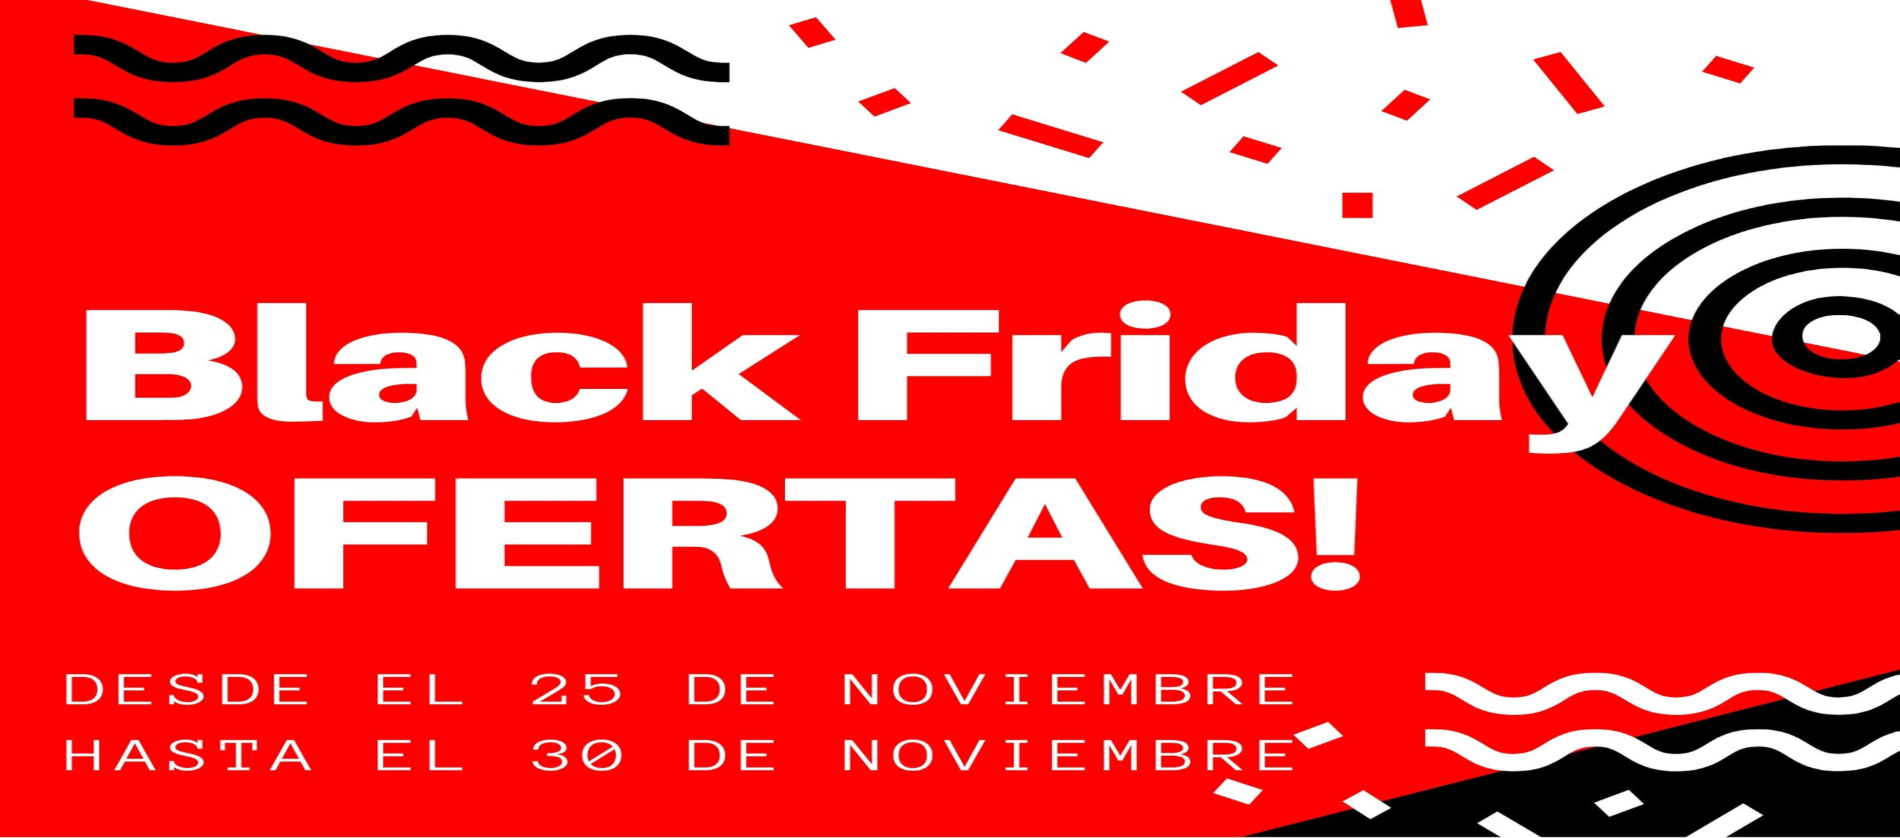 Black-Friday-OFERTAS-2019